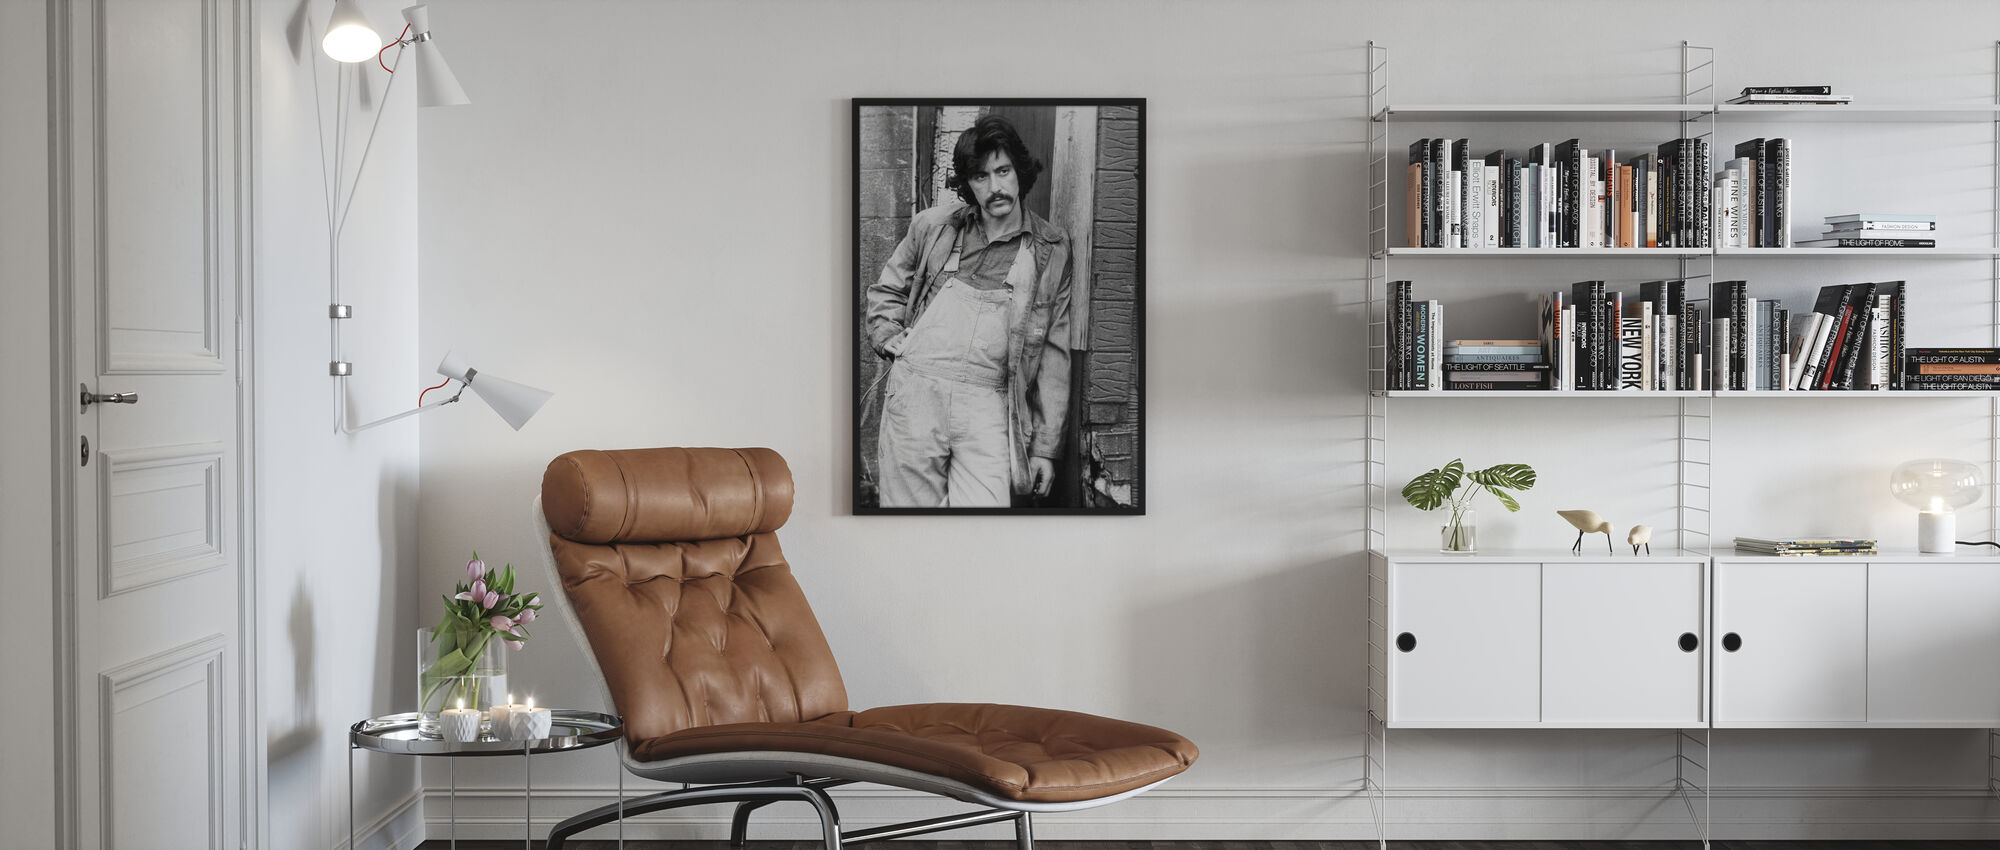 Serpico - Poster - Living Room